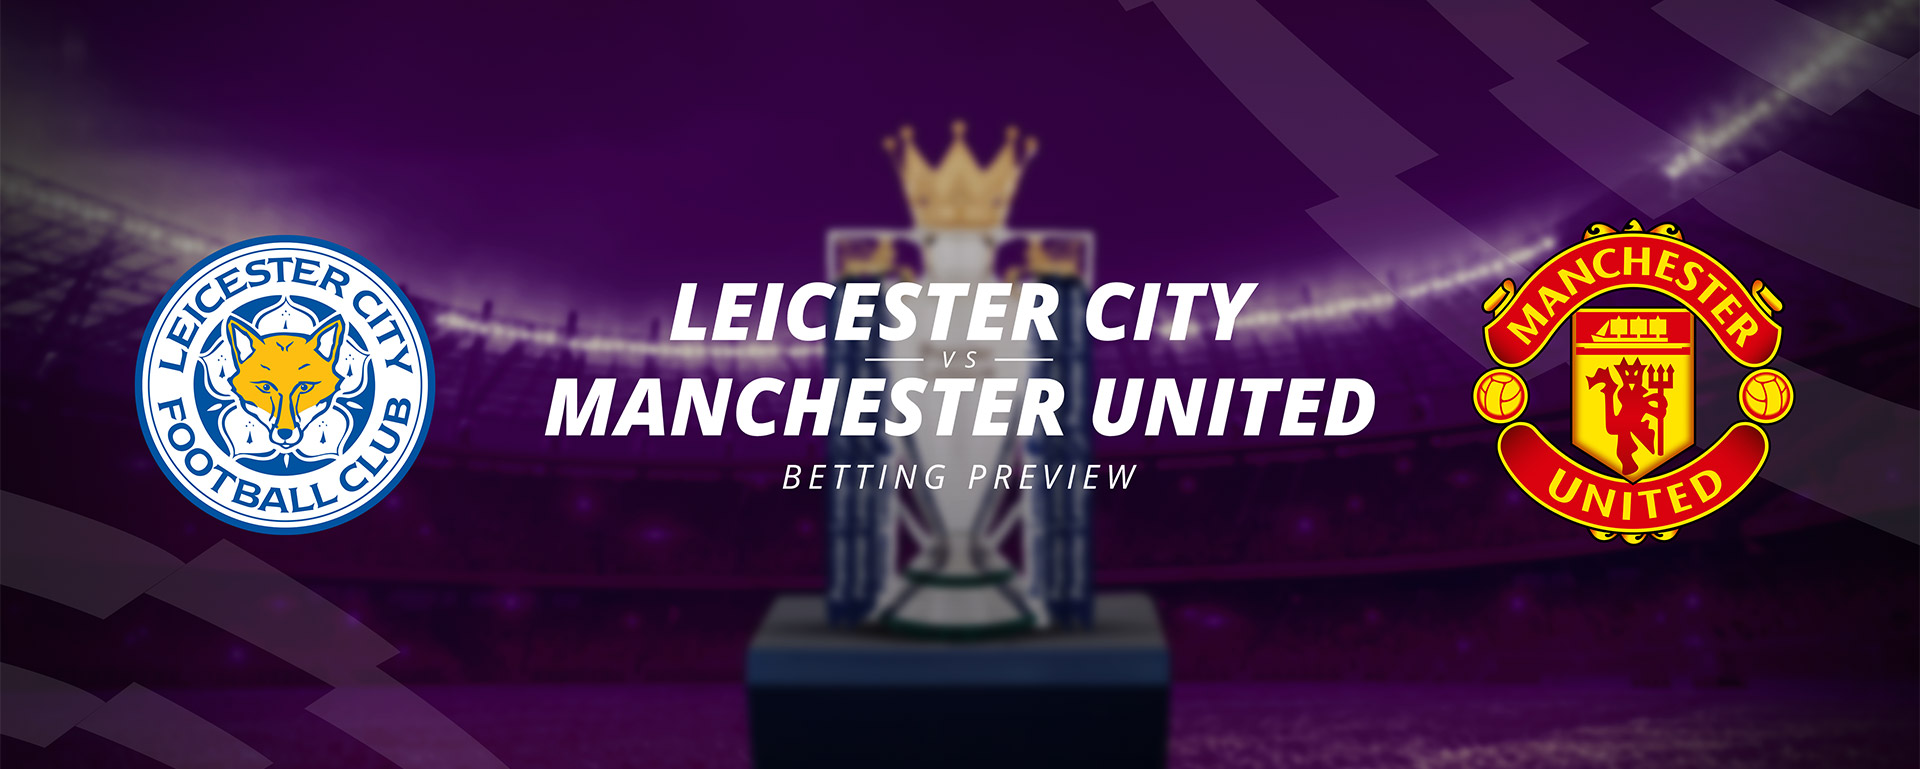 LEICESTER CITY VS MANCHESTER UNITED: MATCH PREVIEW